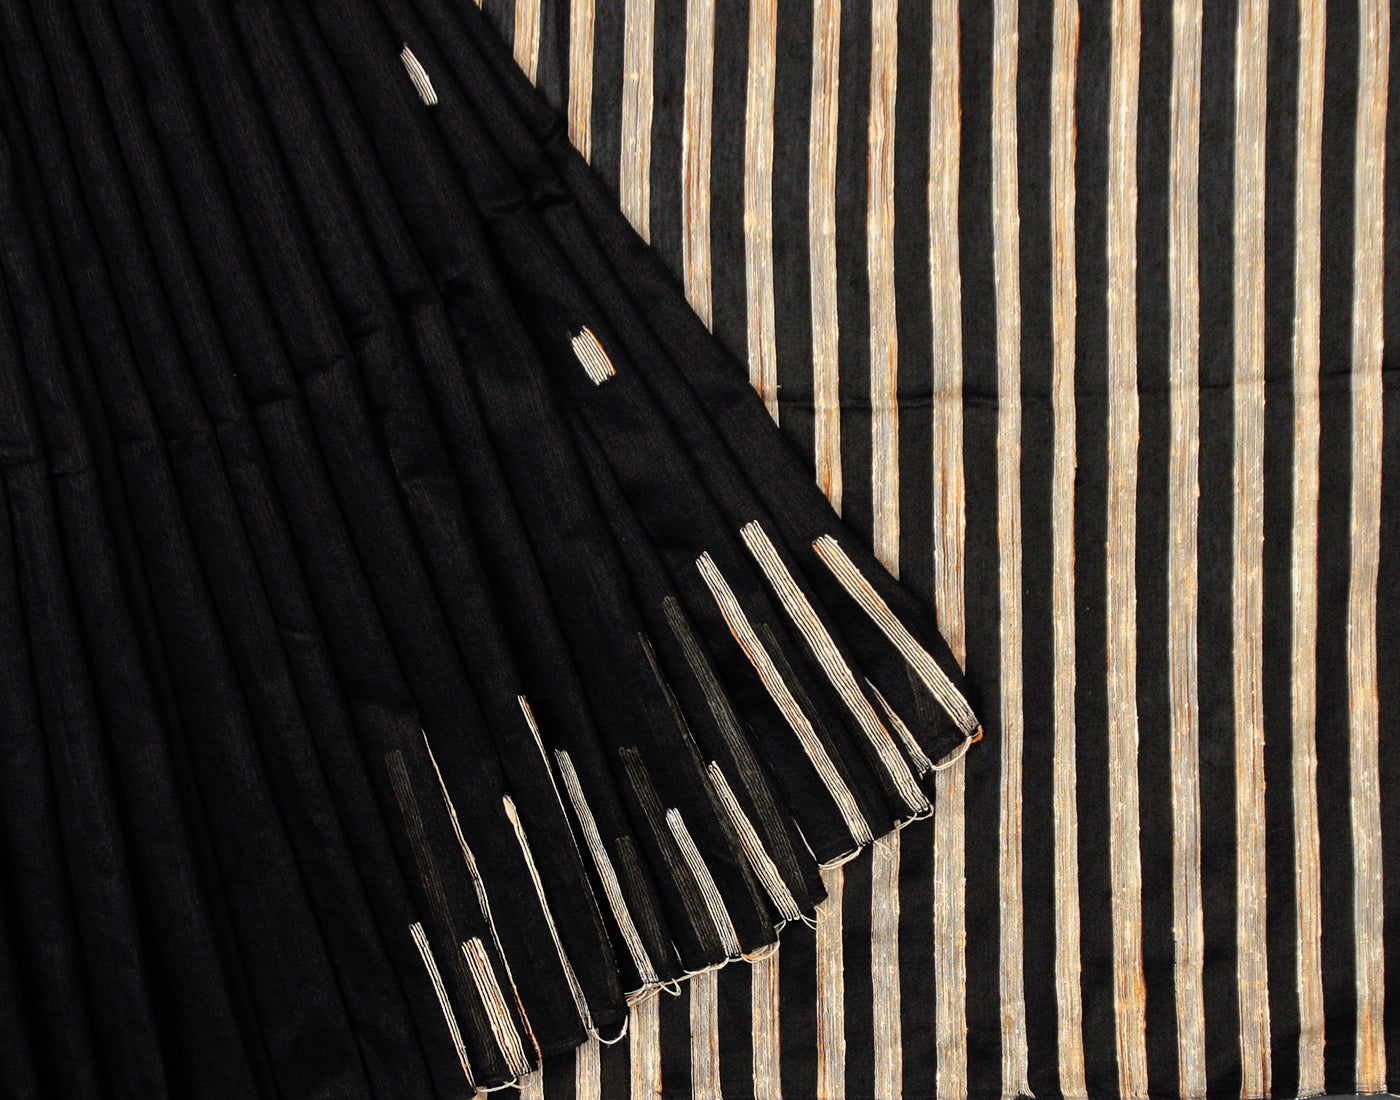 Black 'N' Cream Cotton Striped Saree With Fringes